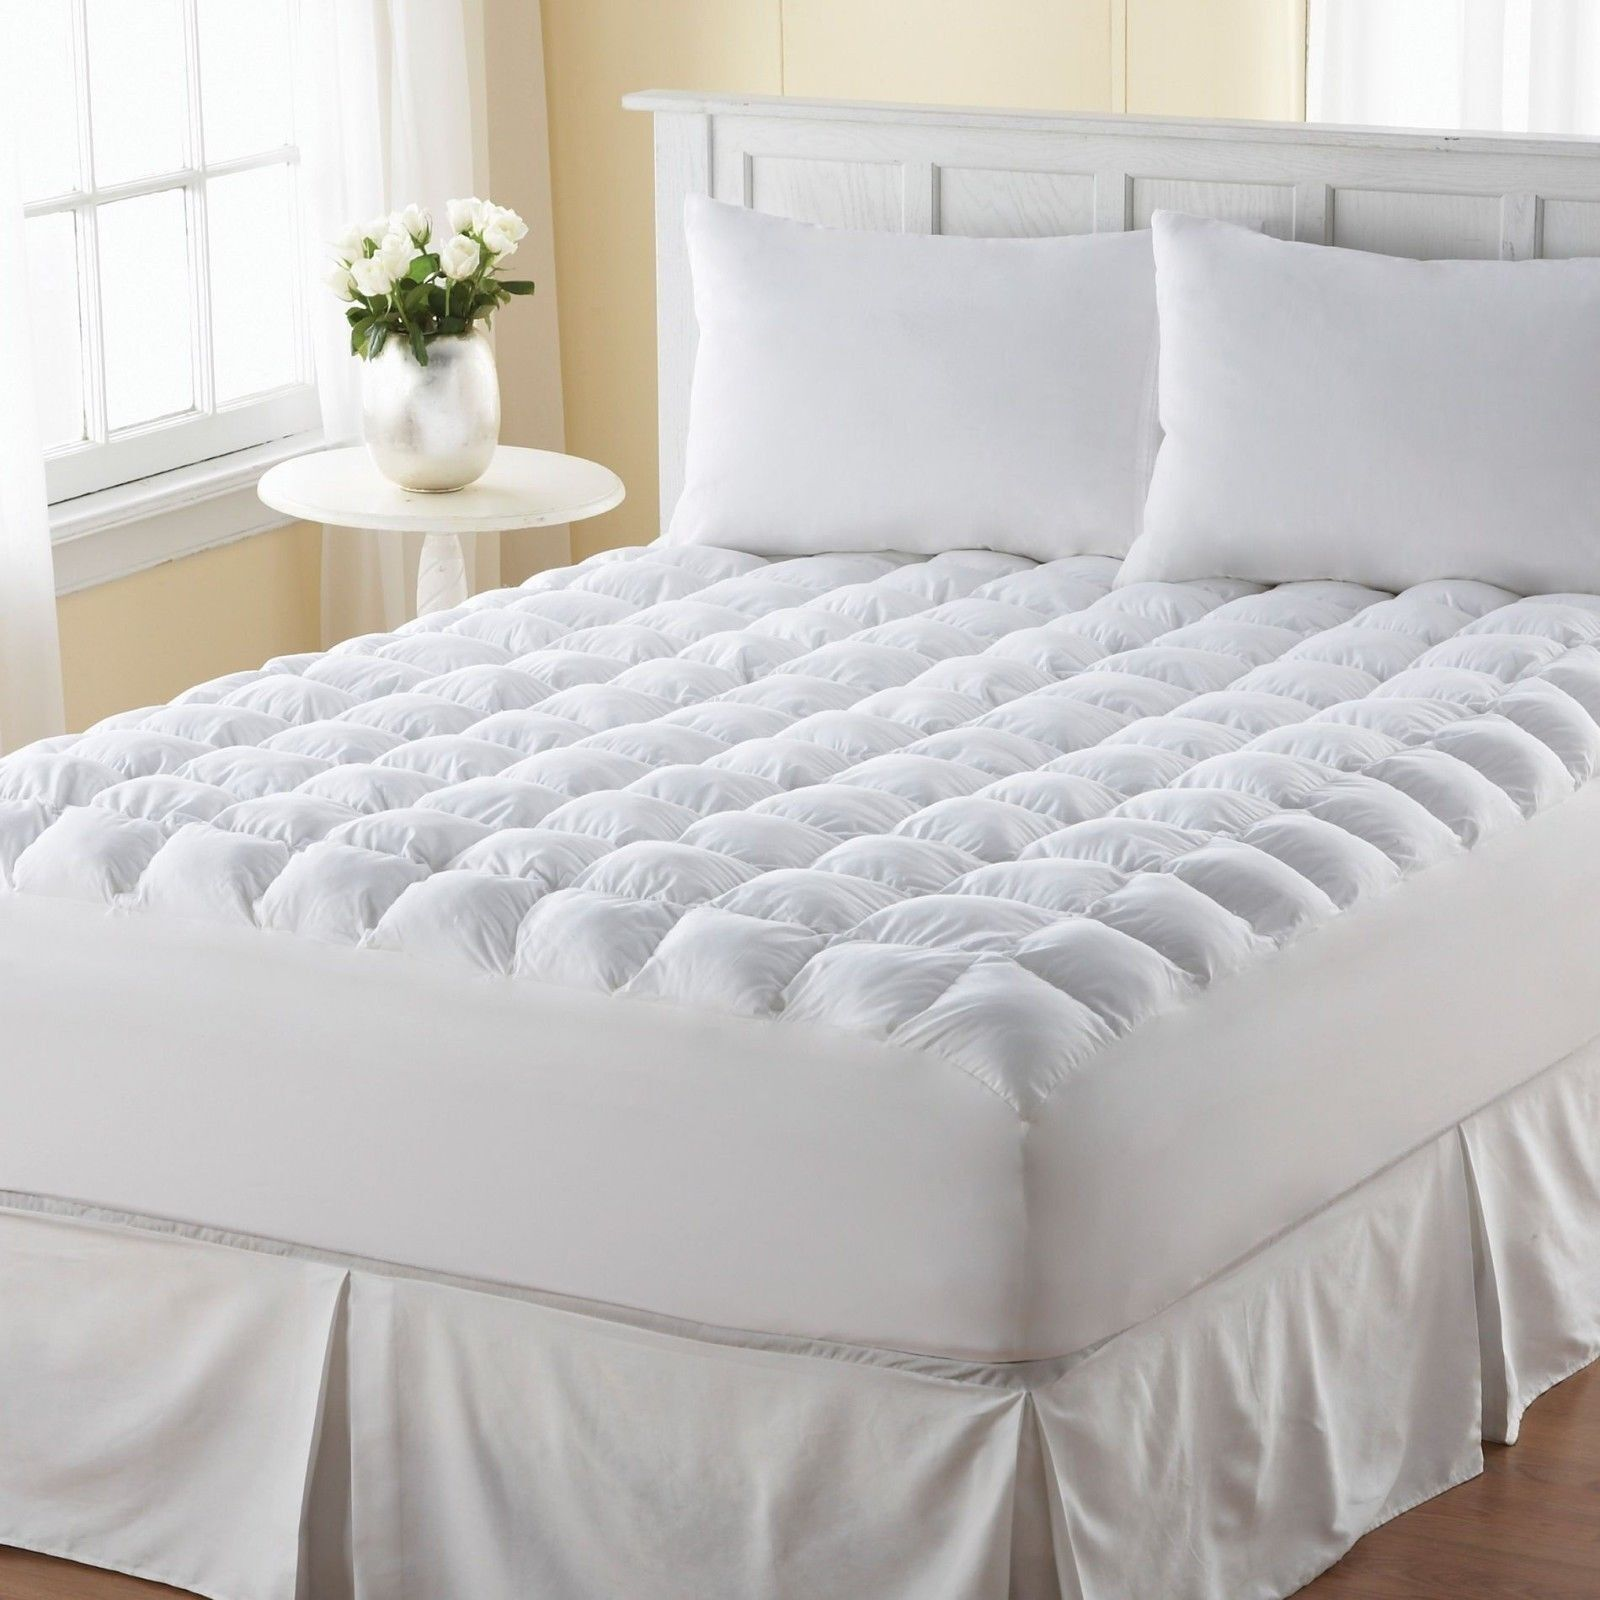 astounding full with encasedess memory top pillow topper size of photos mattress pad foam queen design allenton